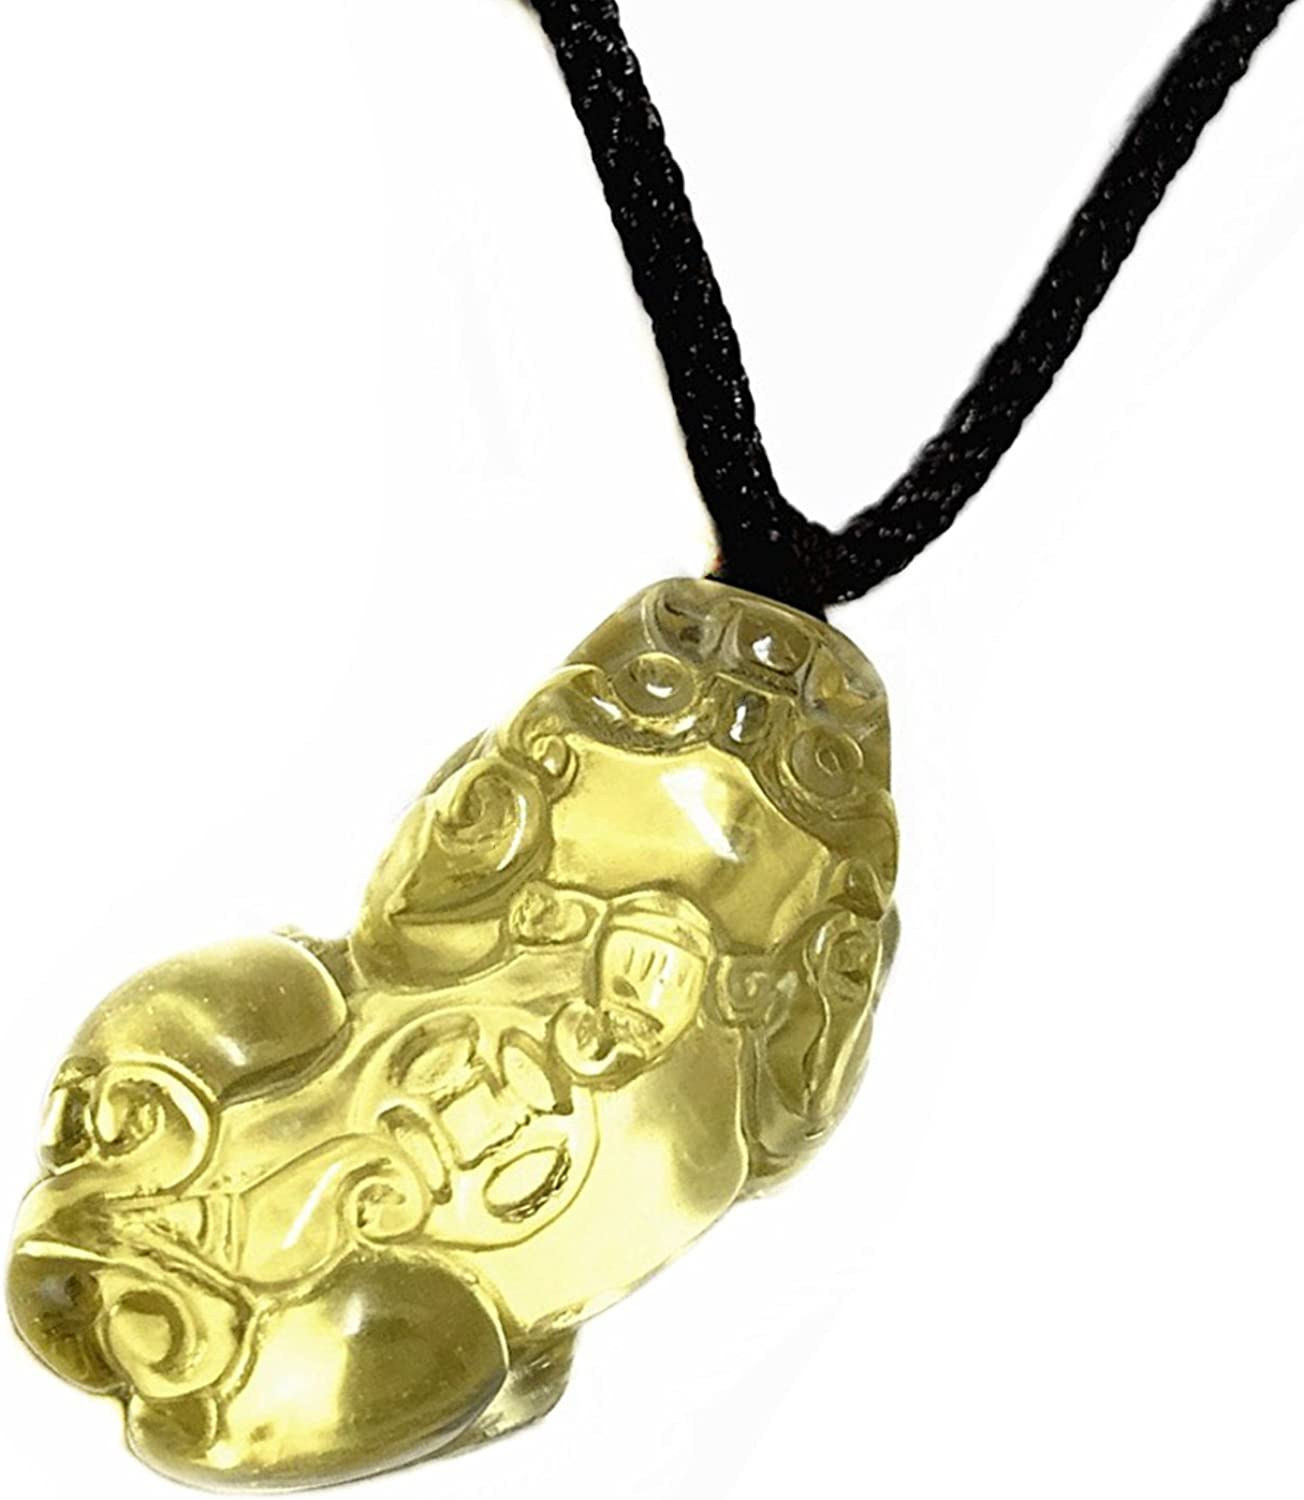 with a Gift Bag Betterdecor Handmade Feng Shui Pi Yao Necklace Pendant for Wealth Luck -Assorted Colors